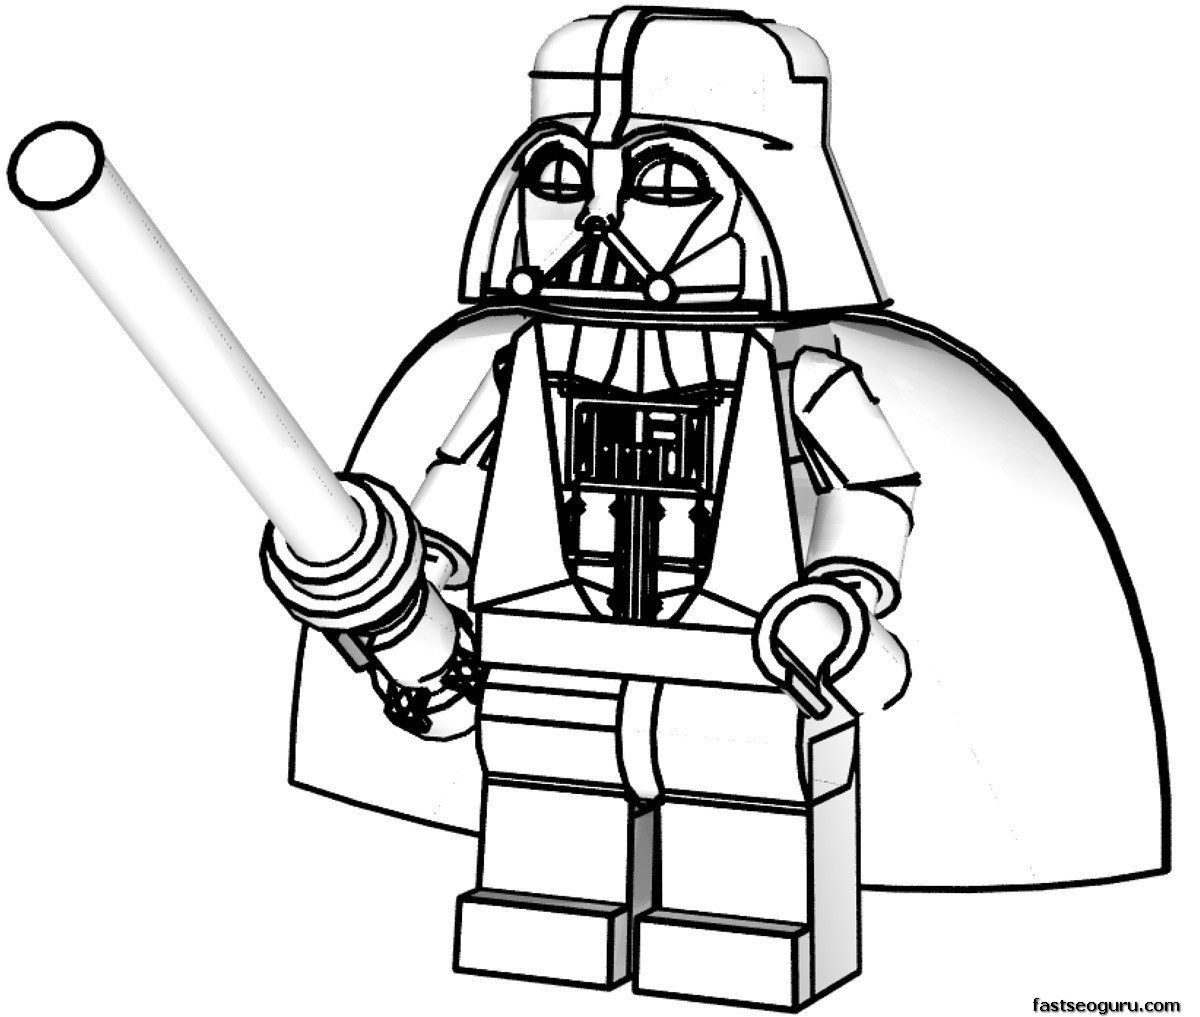 Lego character clipart black and white clip library Lego star wars clipart black and white - ClipartFest clip library